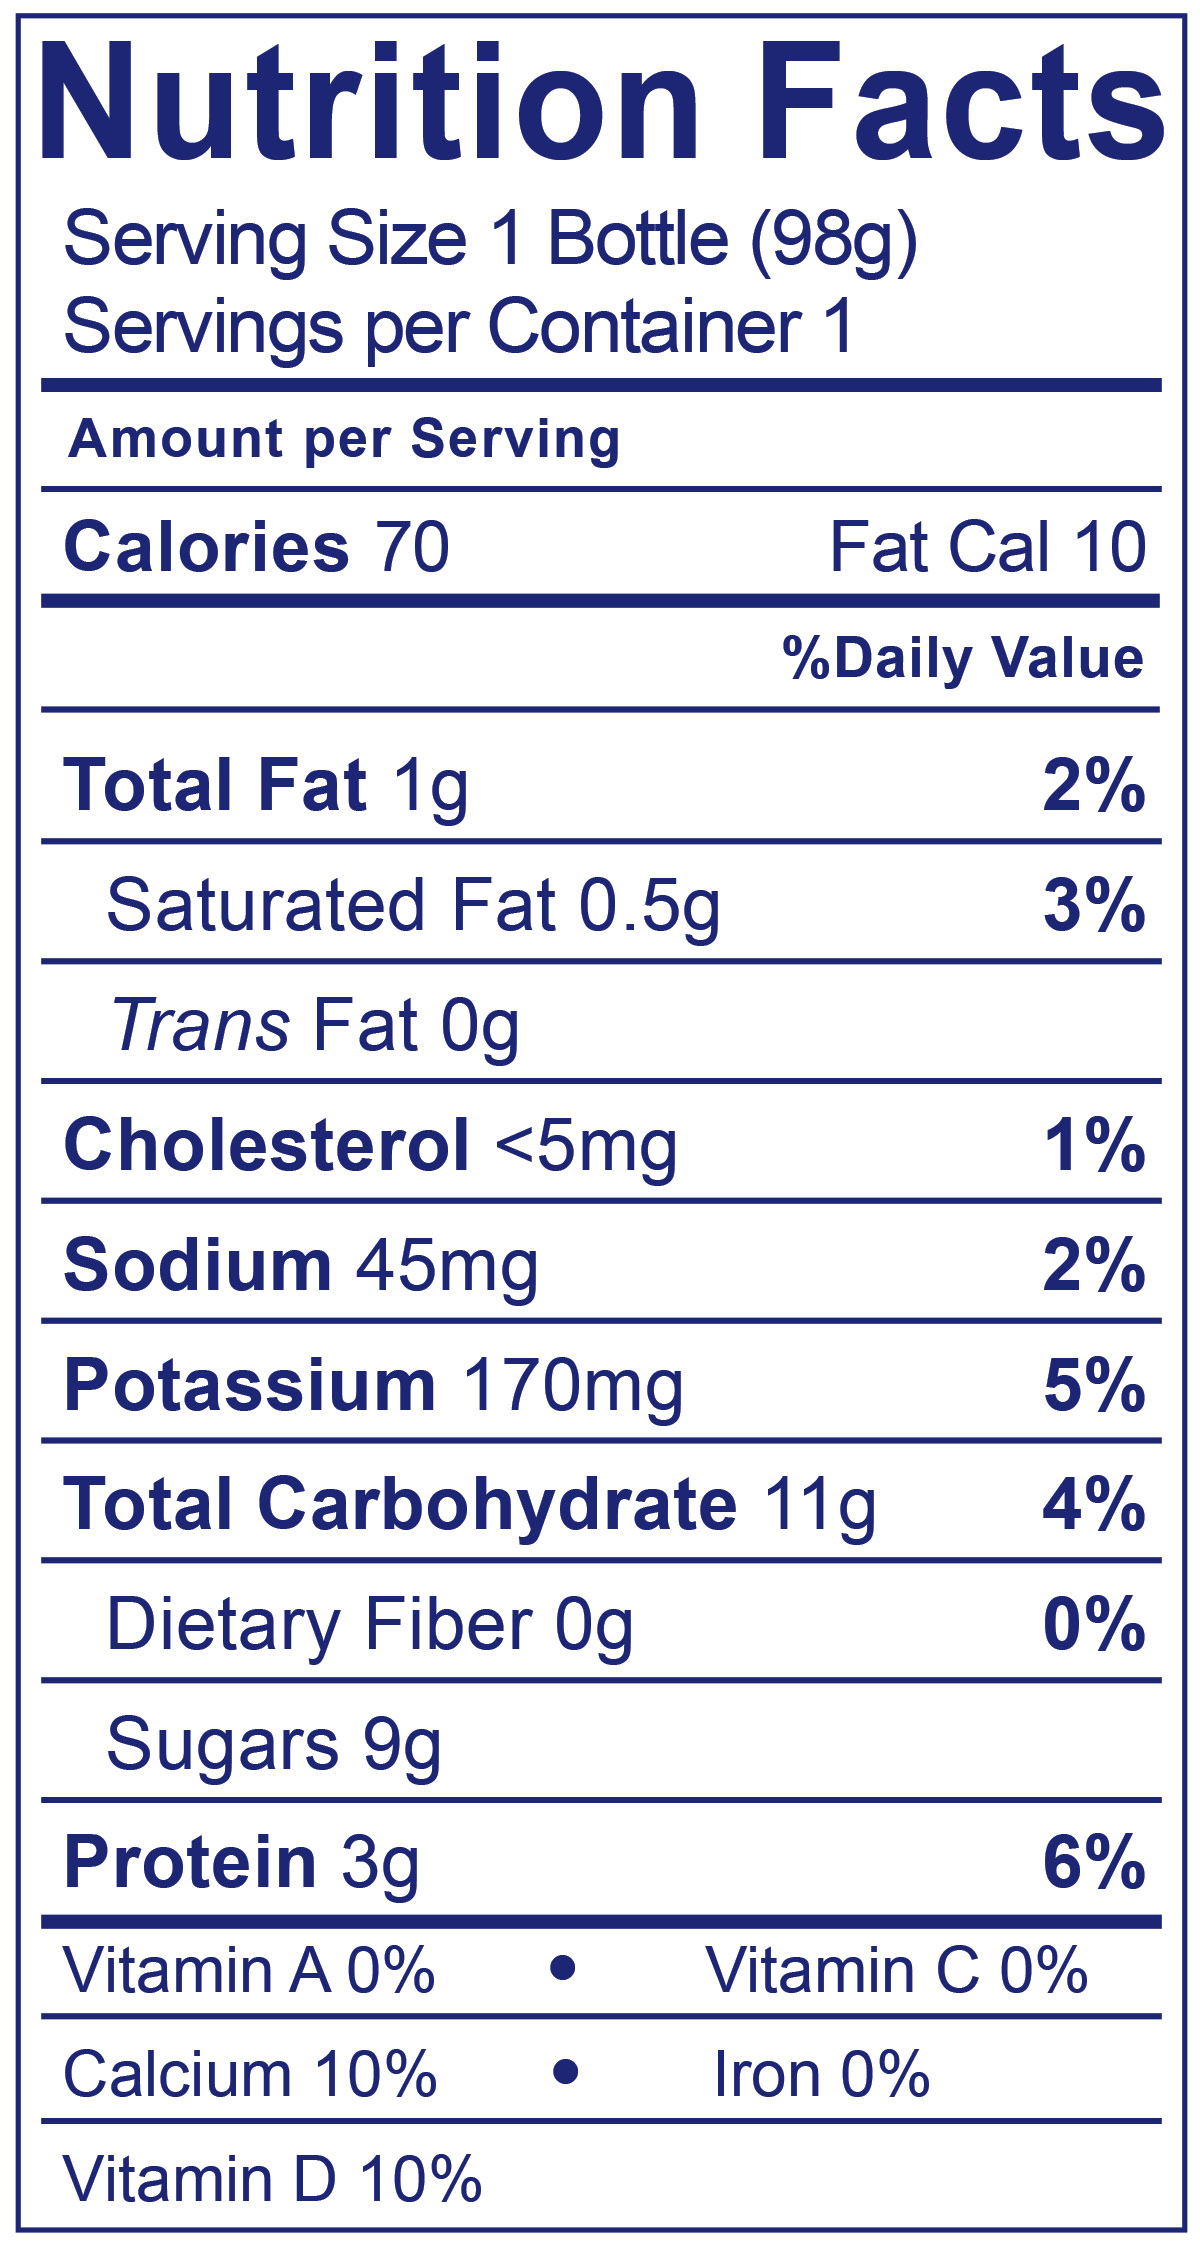 Kids Low Fat Smoothies Strawberry Banana - Nutrition Facts